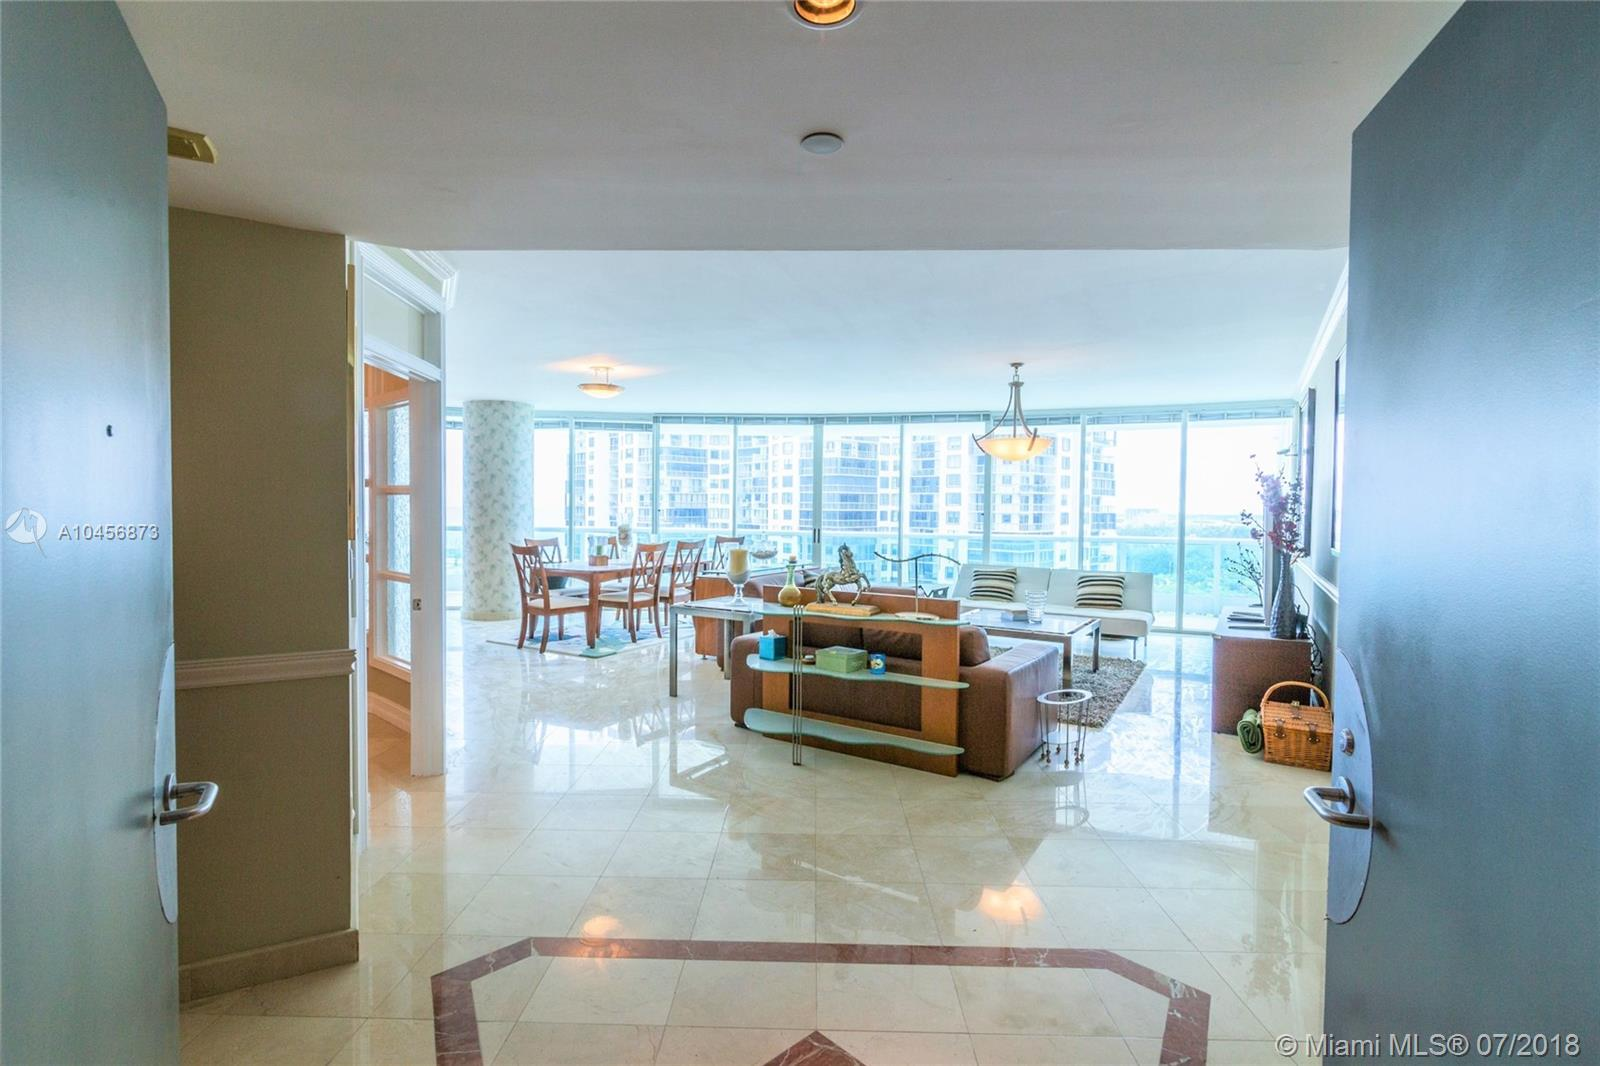 2127 Brickell Avenue, Miami, FL 33129, Bristol Tower Condominium #1702, Brickell, Miami A10456873 image #3